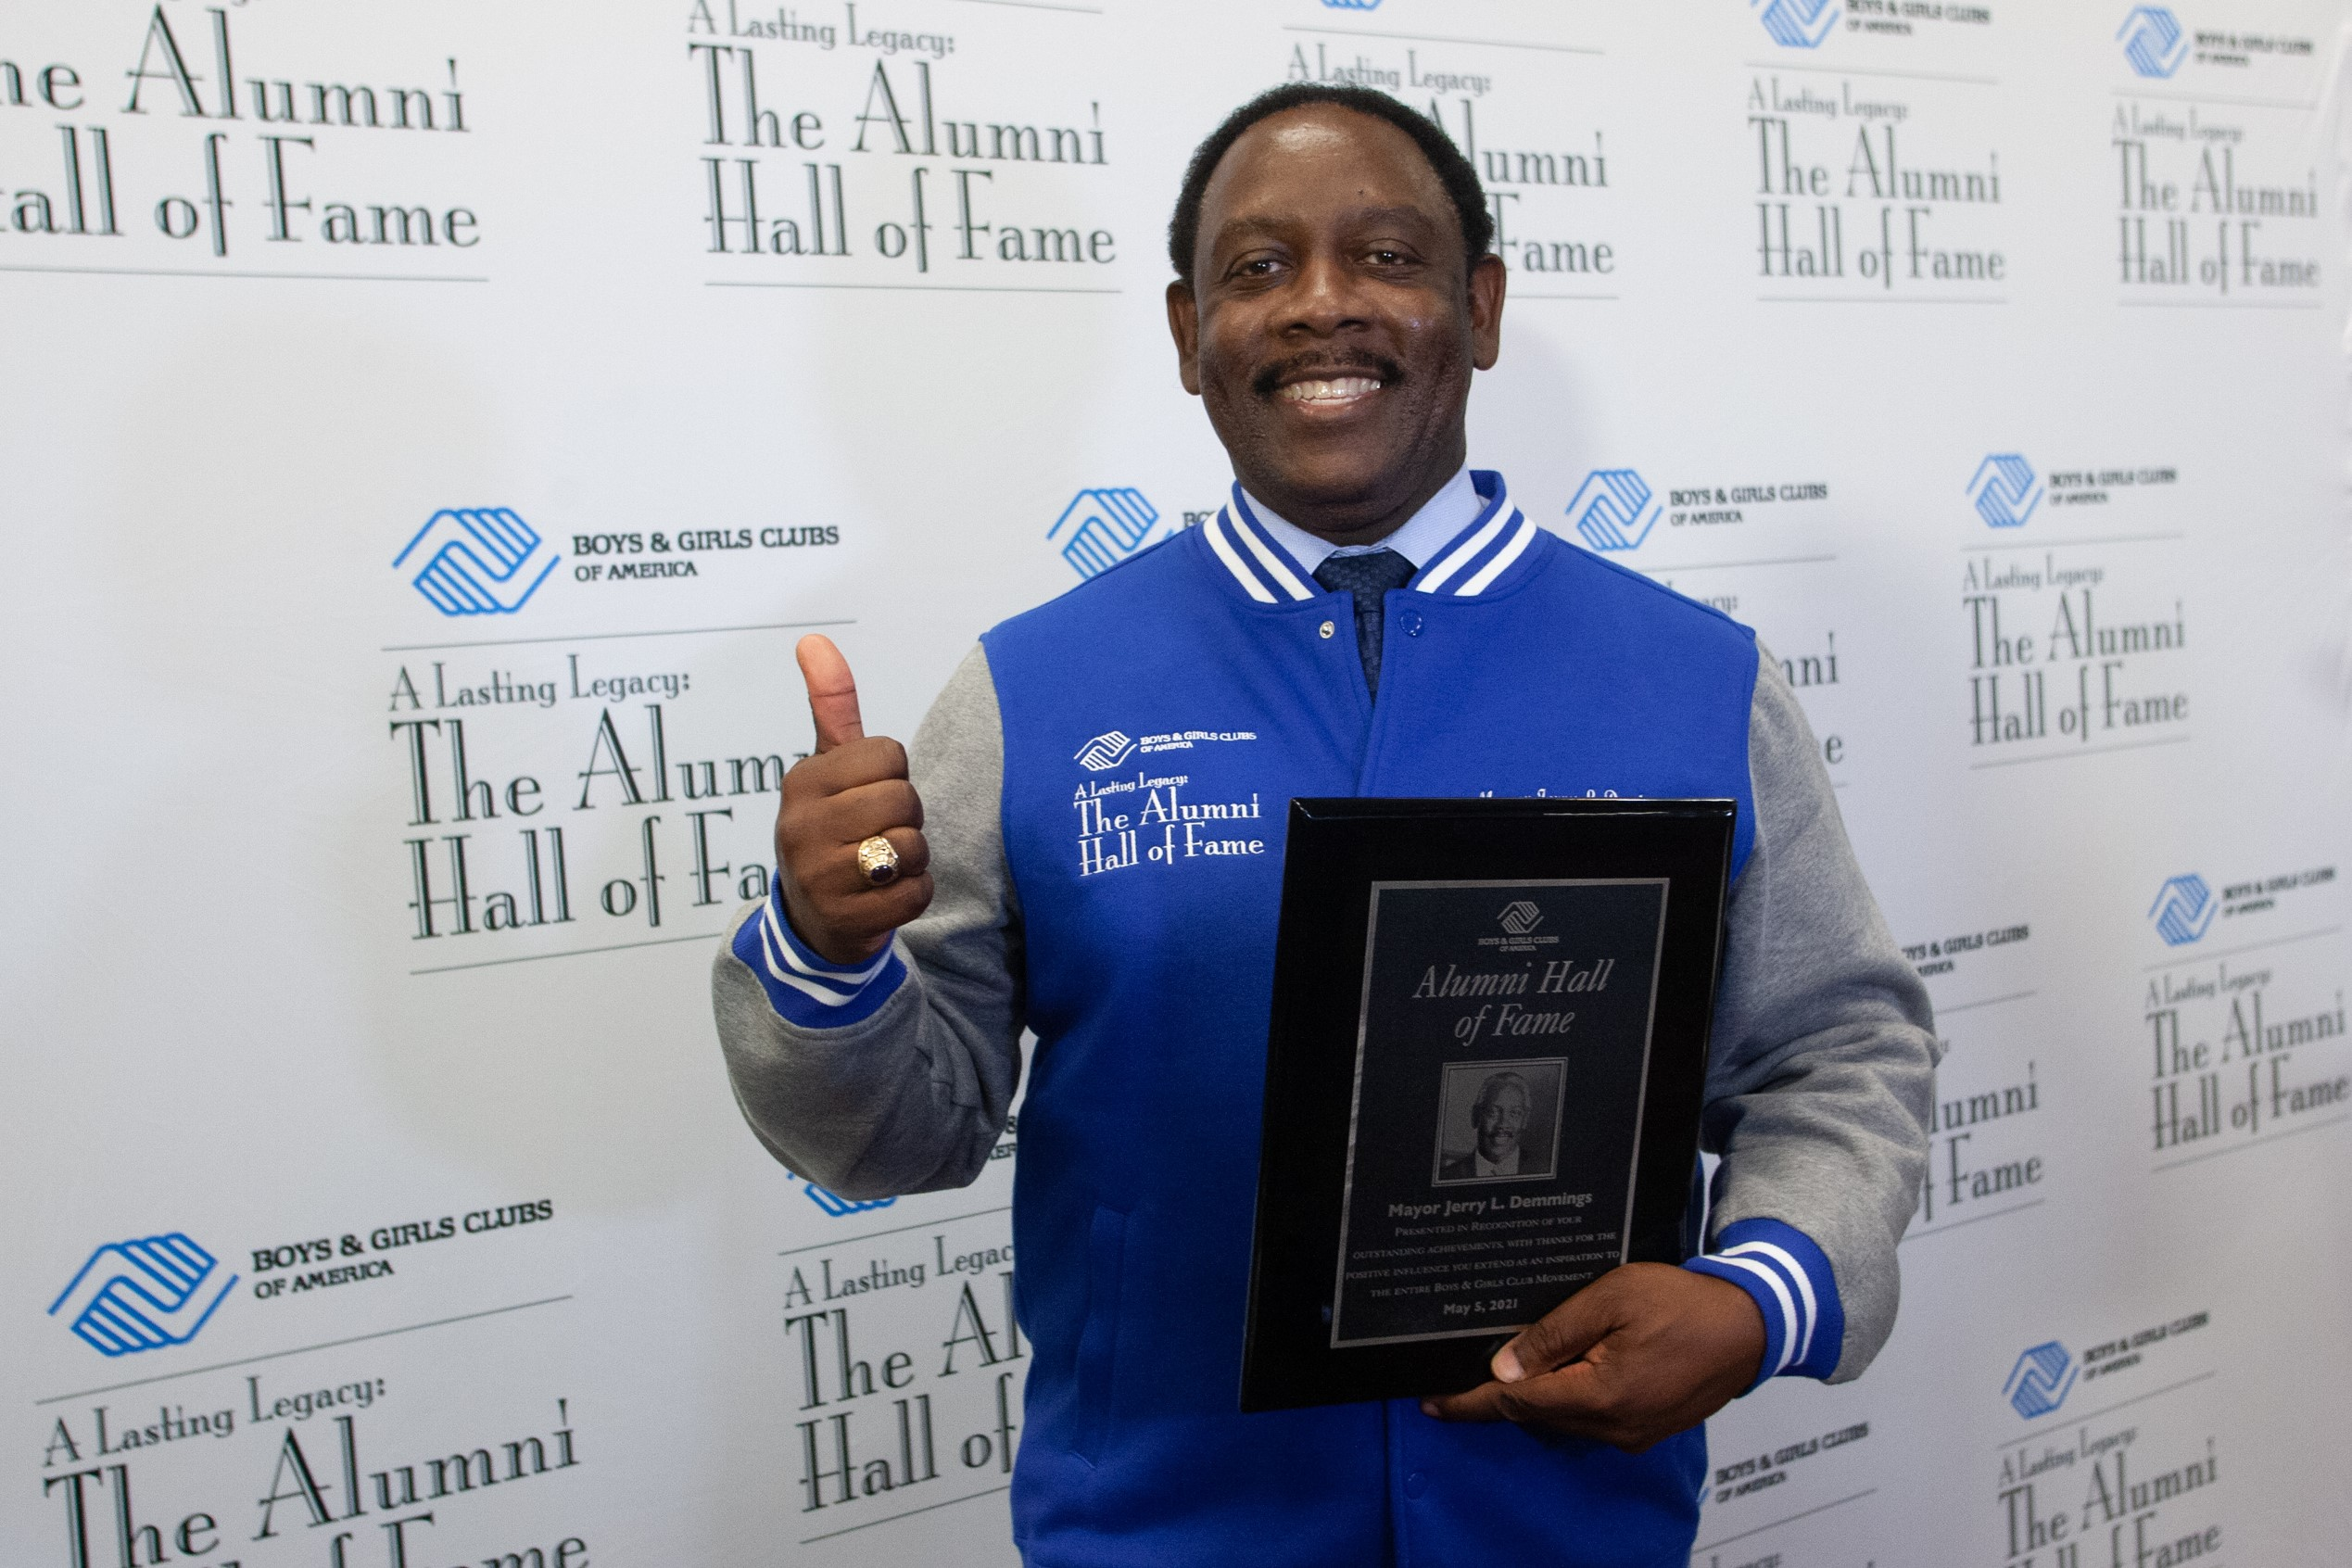 Mayor Demings in a blue jacket holding Alumni Hall of Fame Award giving a thumbs up